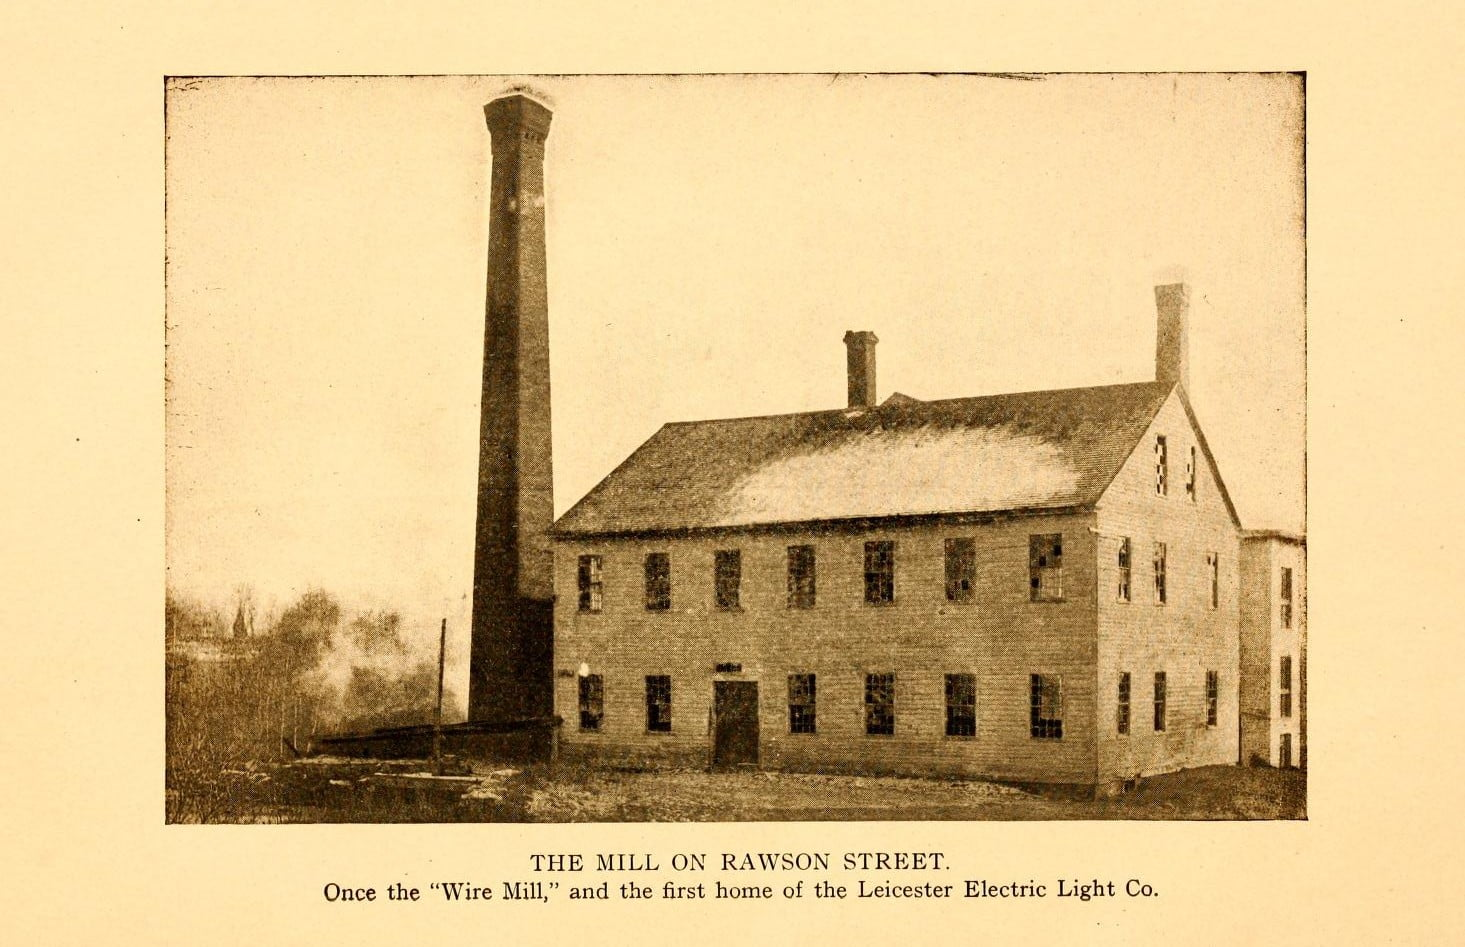 The Mill on Rawson Street